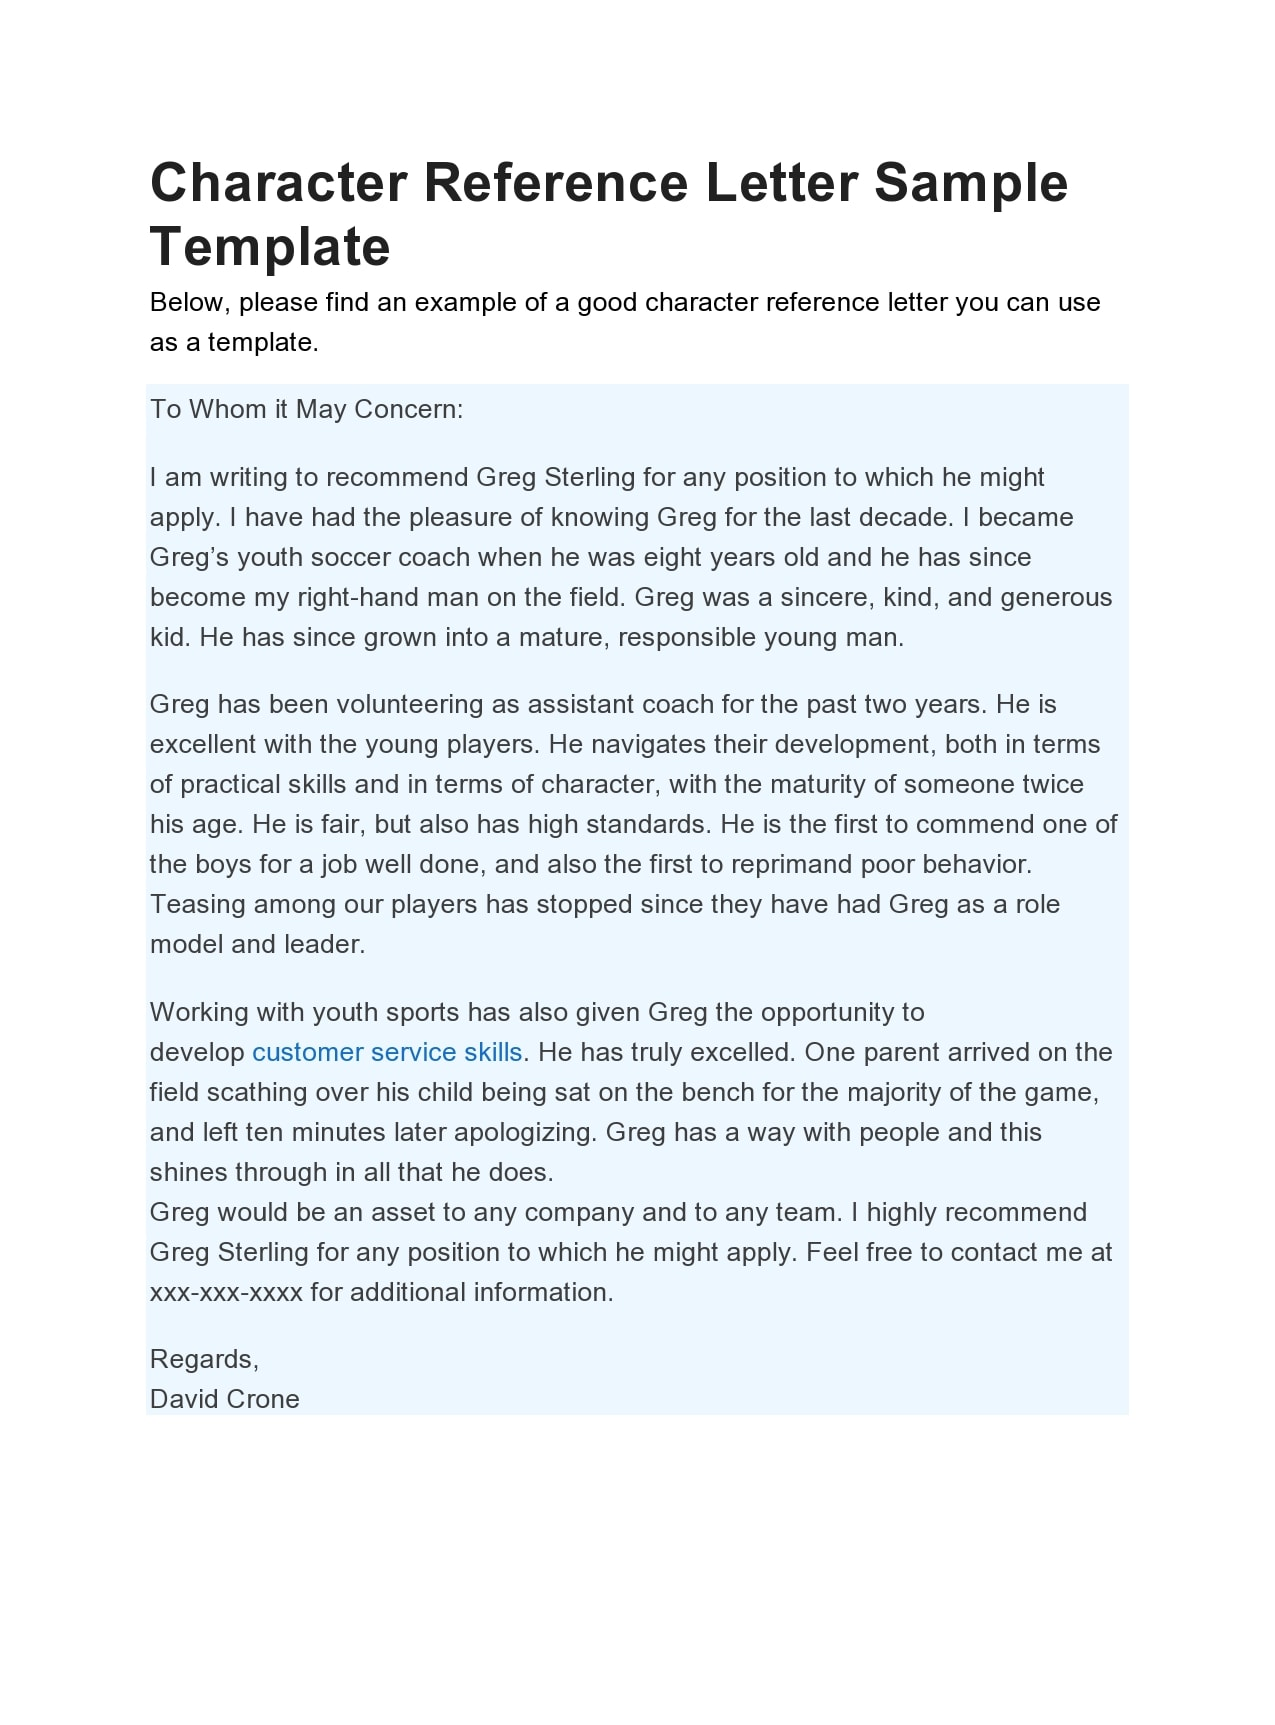 Sample Child Custody Character Reference Letter from templatearchive.com